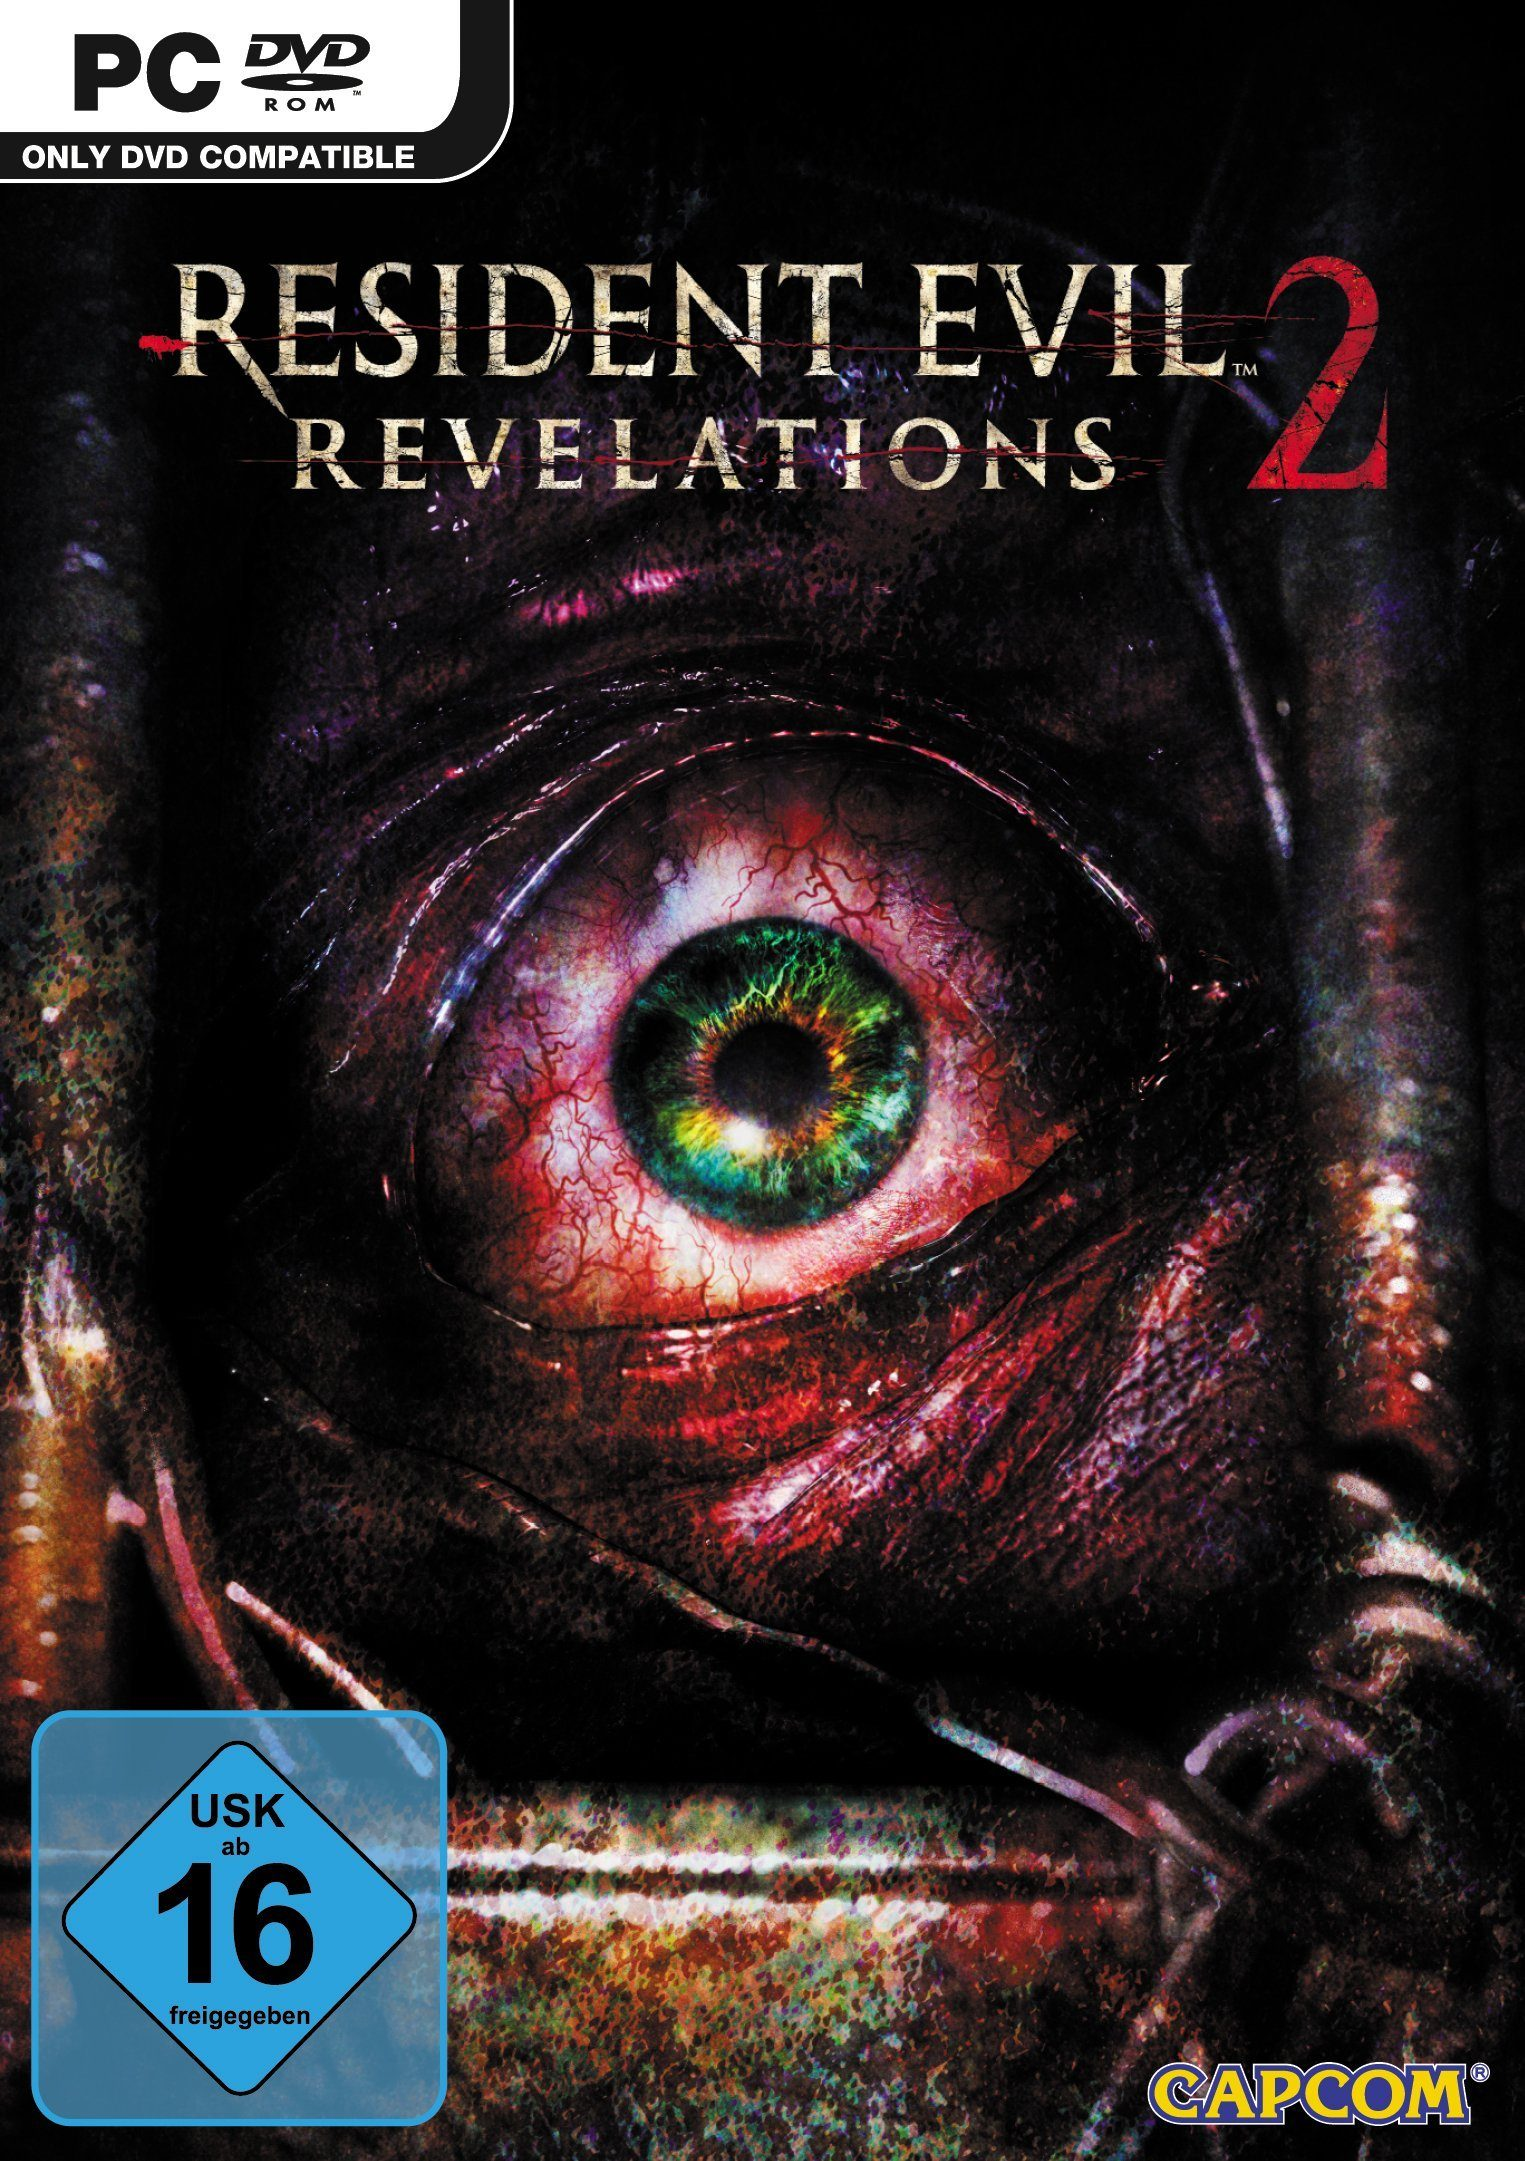 Capcom Resident Evil: Revelations 2 »PC«